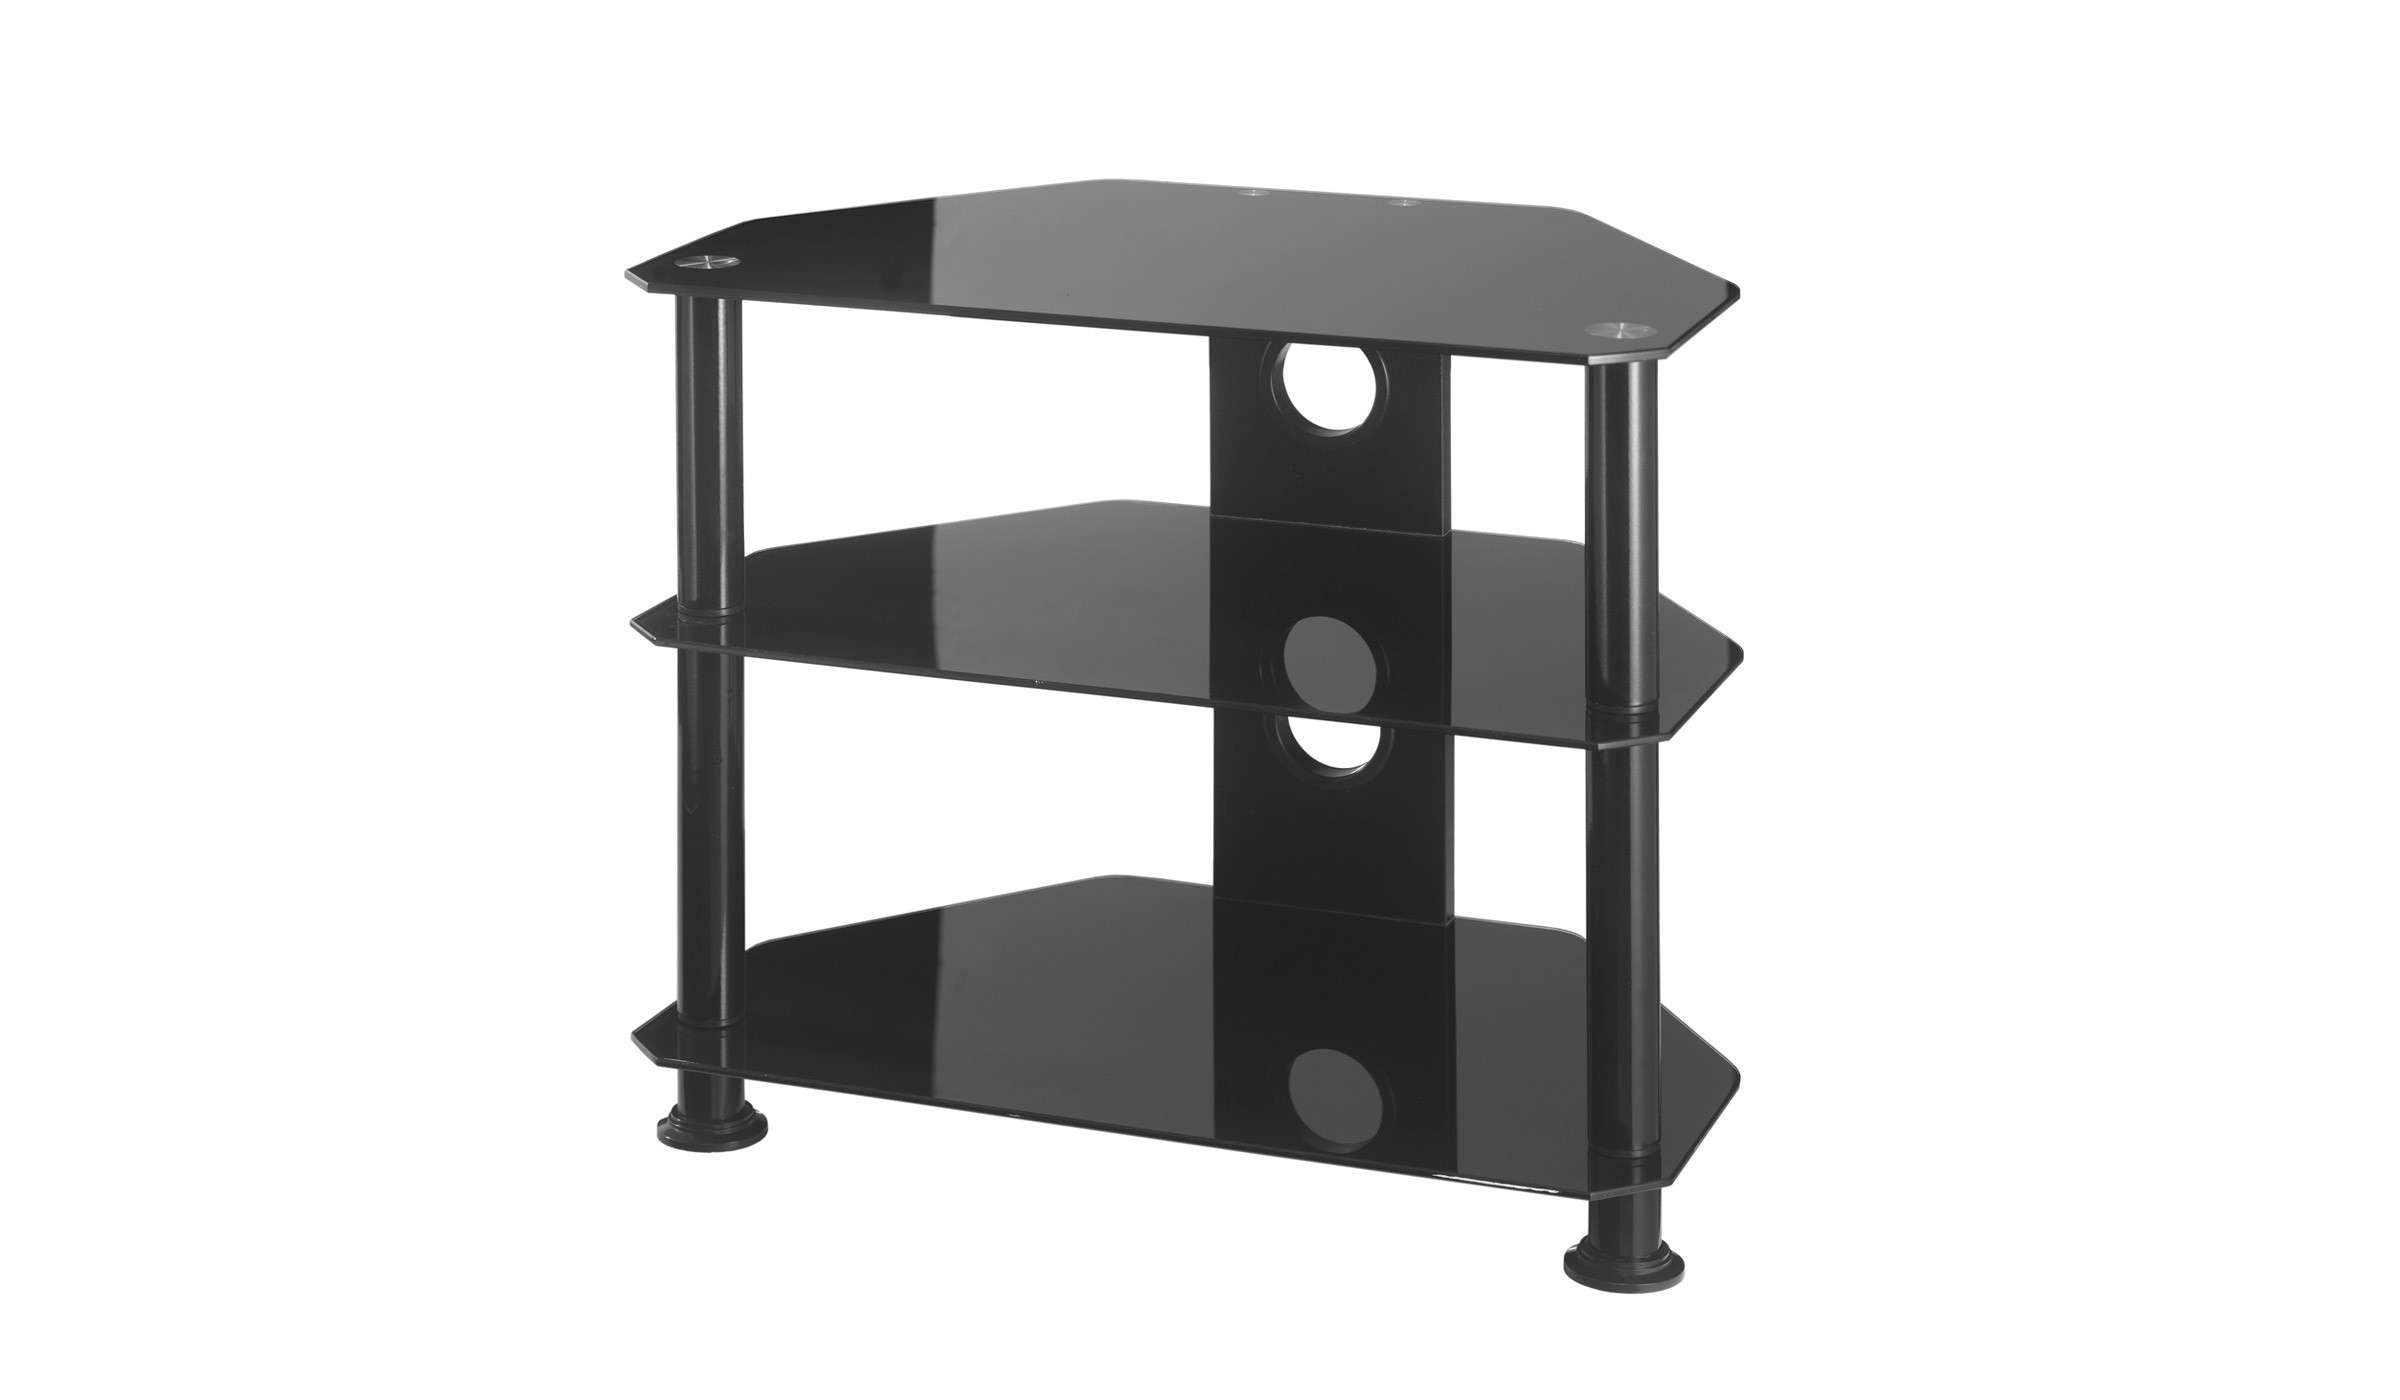 Small Glass Corner Tv Stand Up To 26 Inch Tv | Mmt Db600 Inside Black Glass Tv Stands (View 13 of 15)